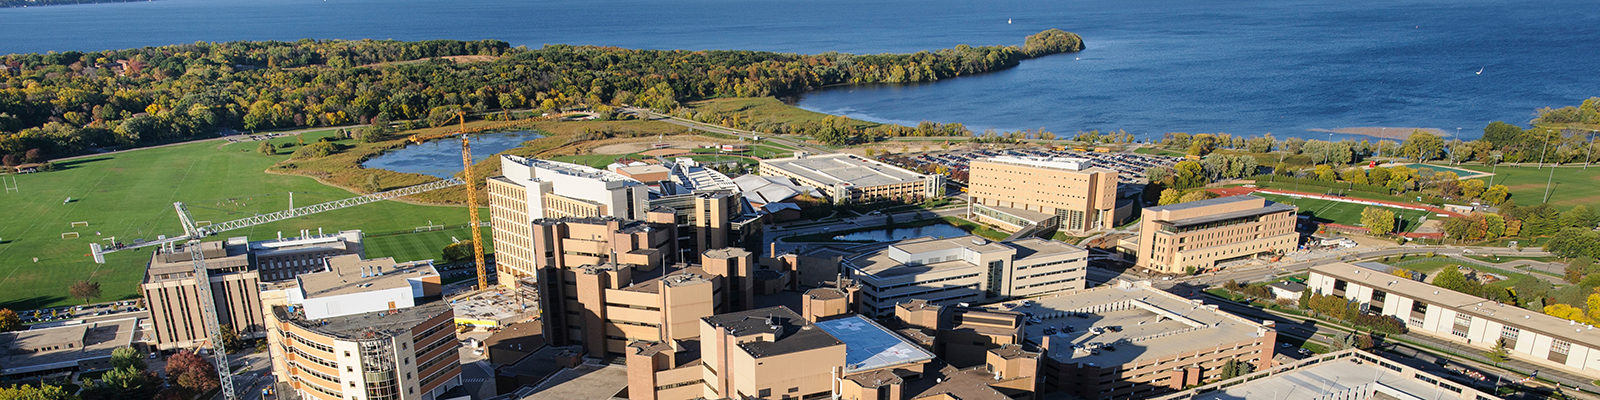 The medical area of the western side of the University of Wisconsin-Madison